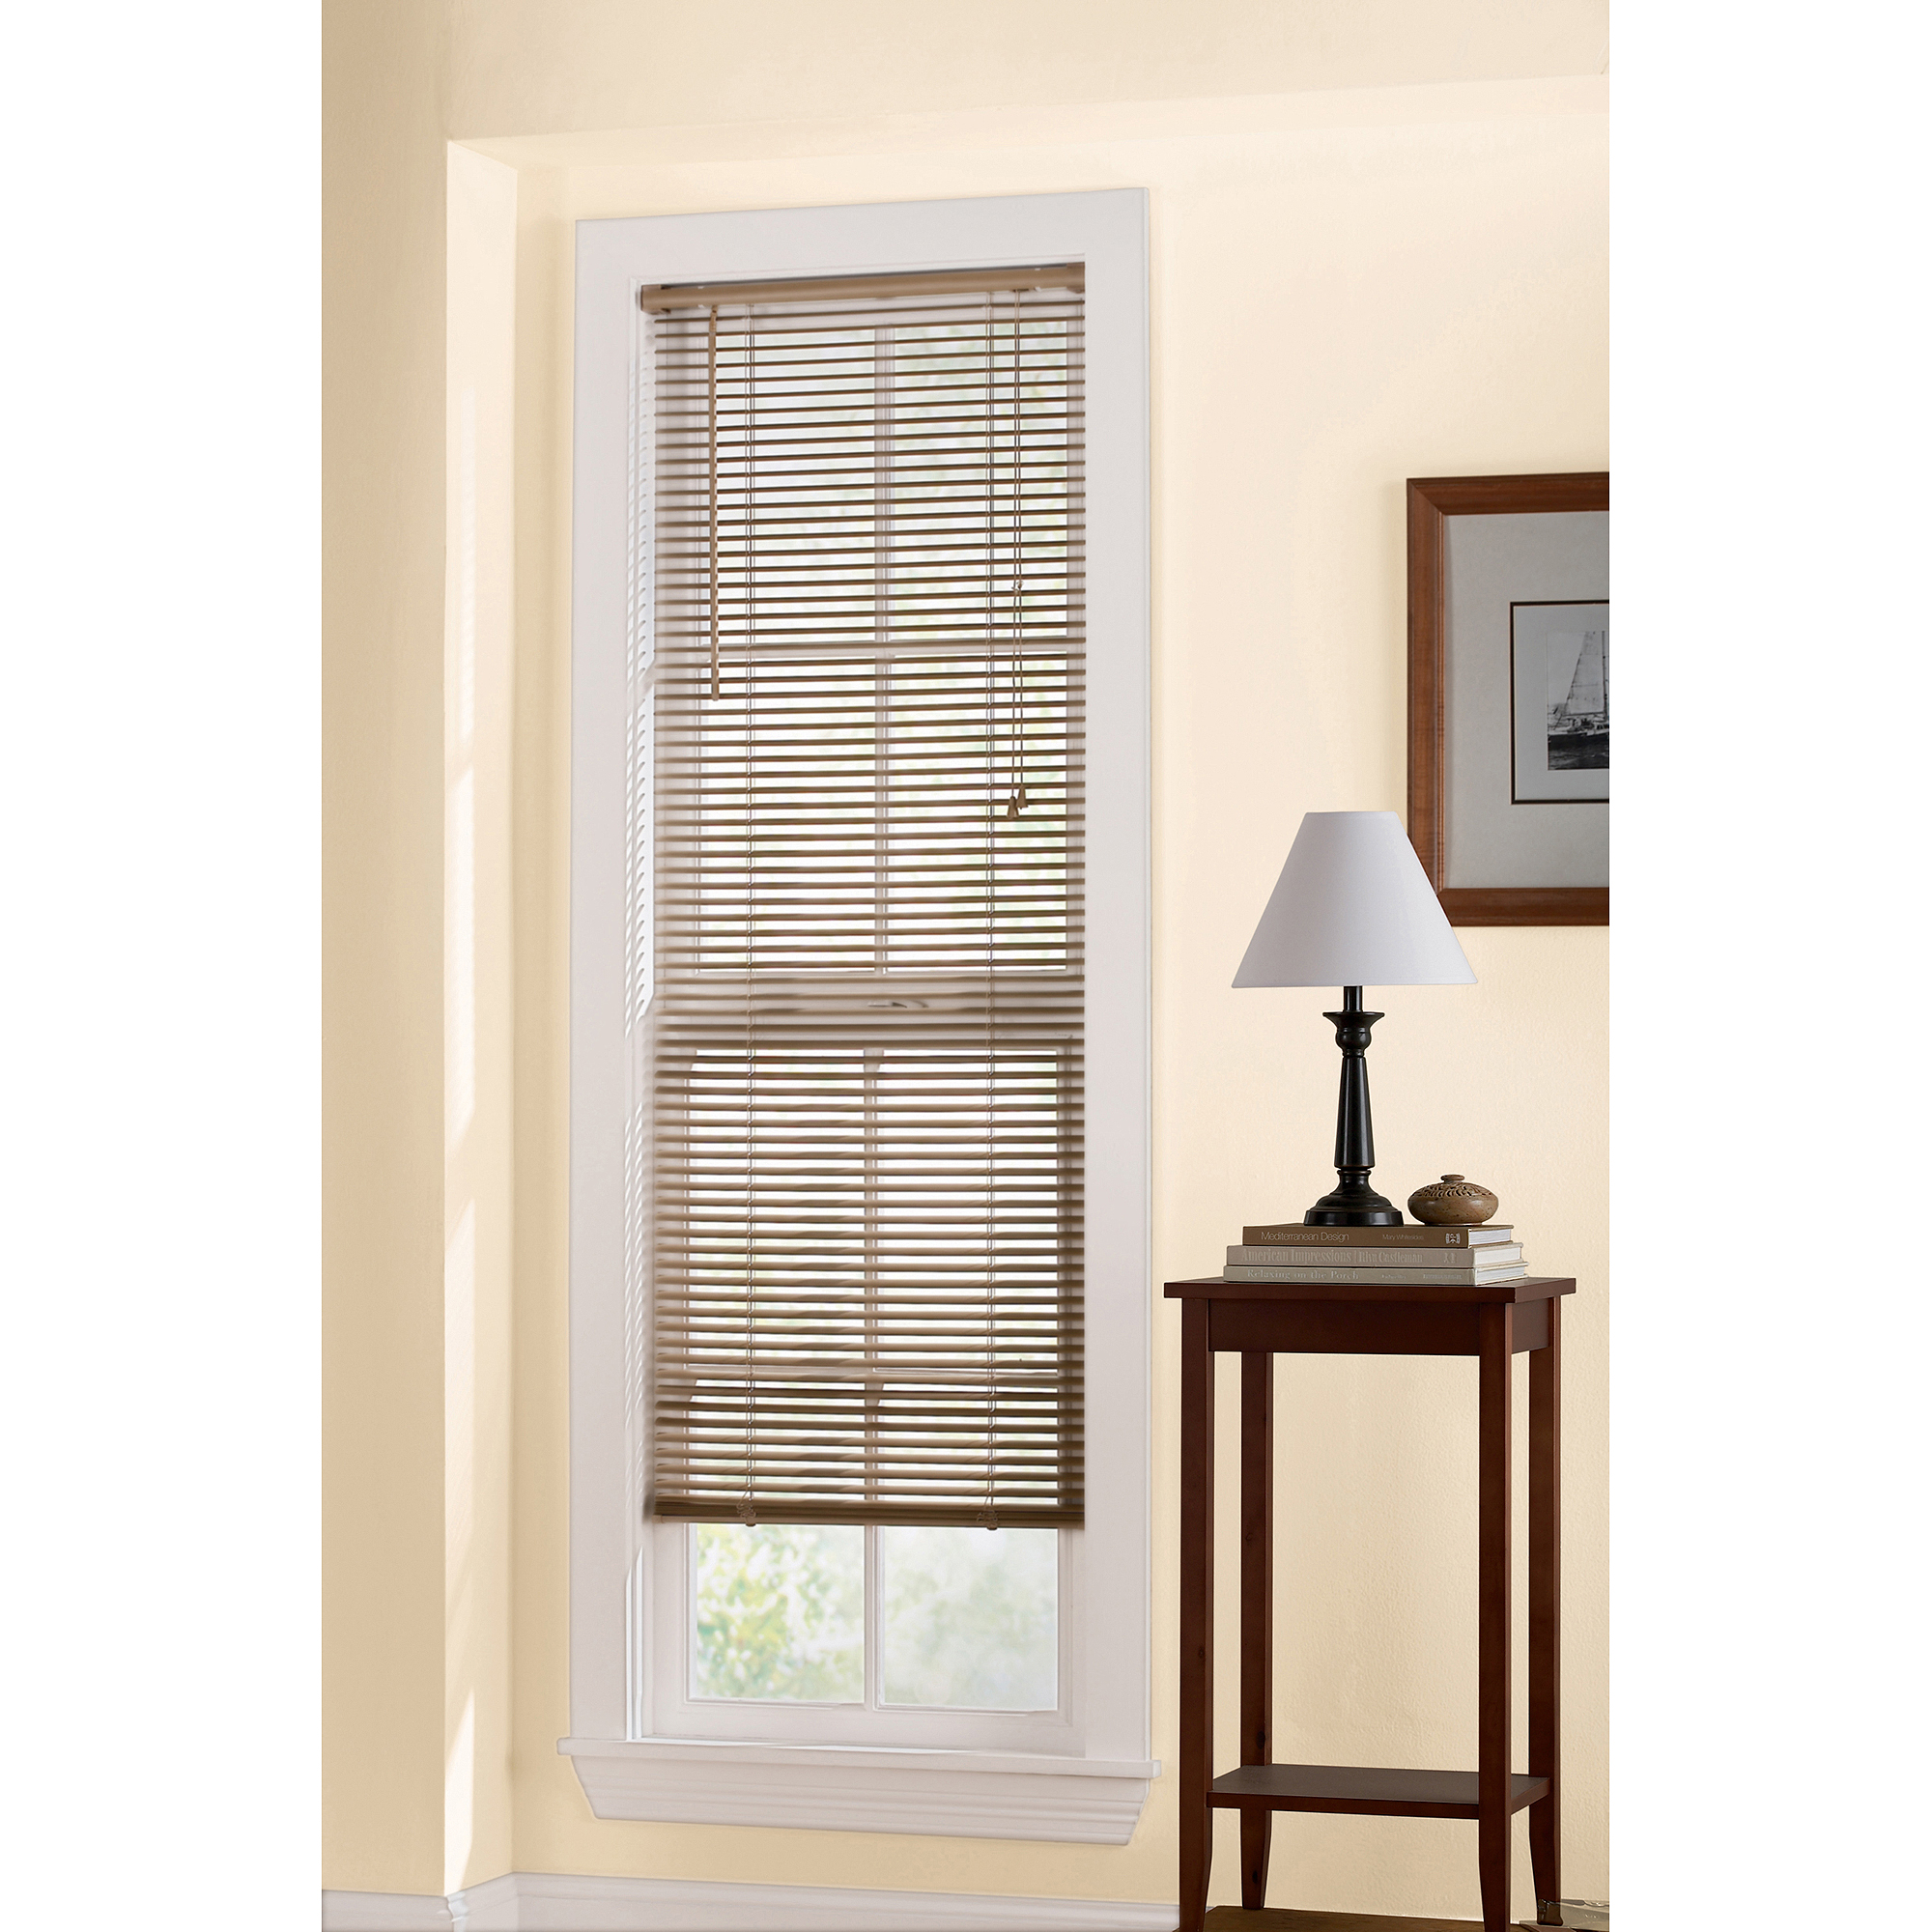 Patio Door Blinds - Blinds patio